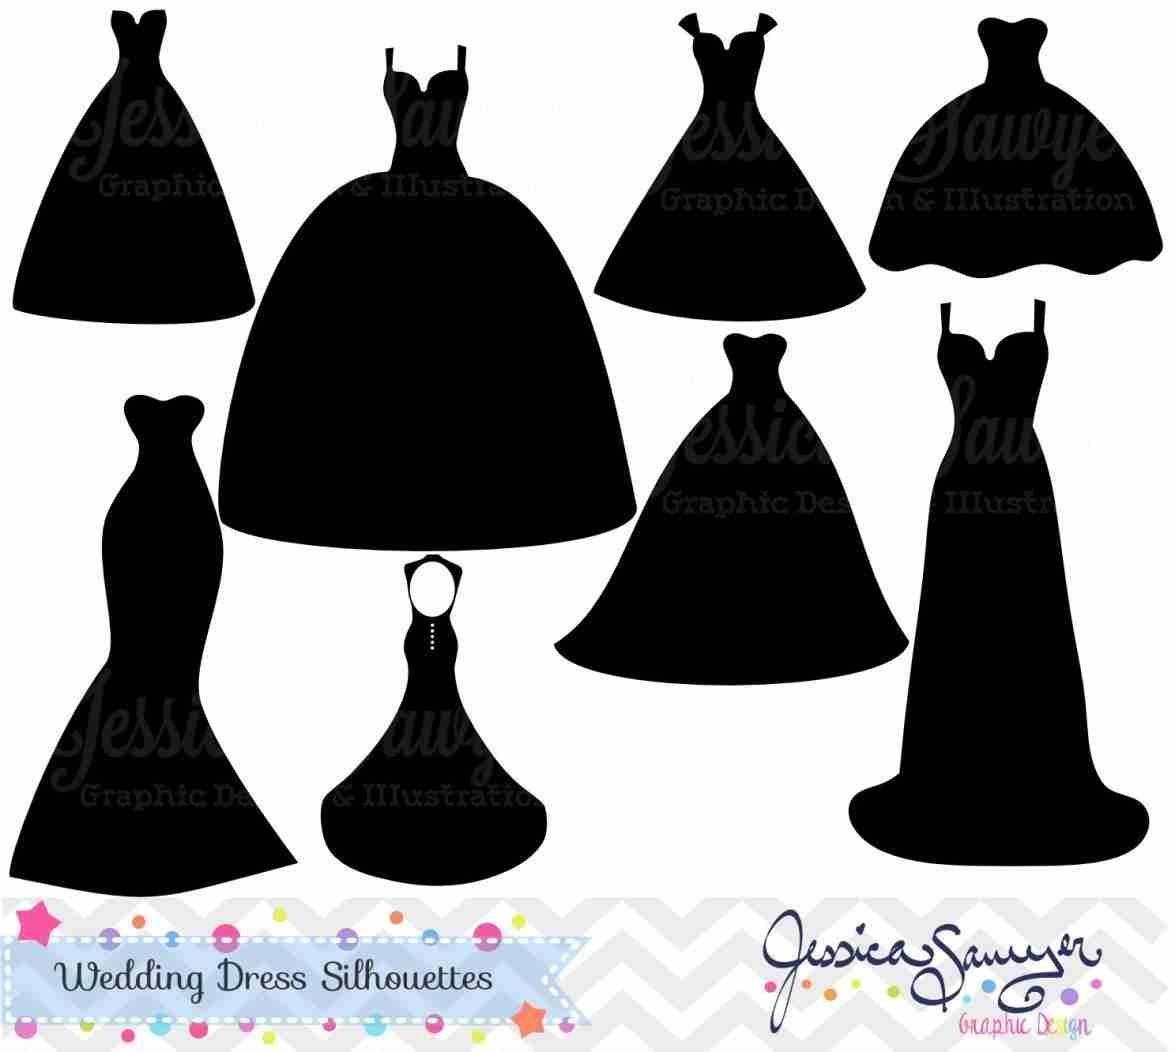 Bridal gown silhouette clipart jpg download wedding dress silhouette black and white | Weddings | Wedding dress ... jpg download